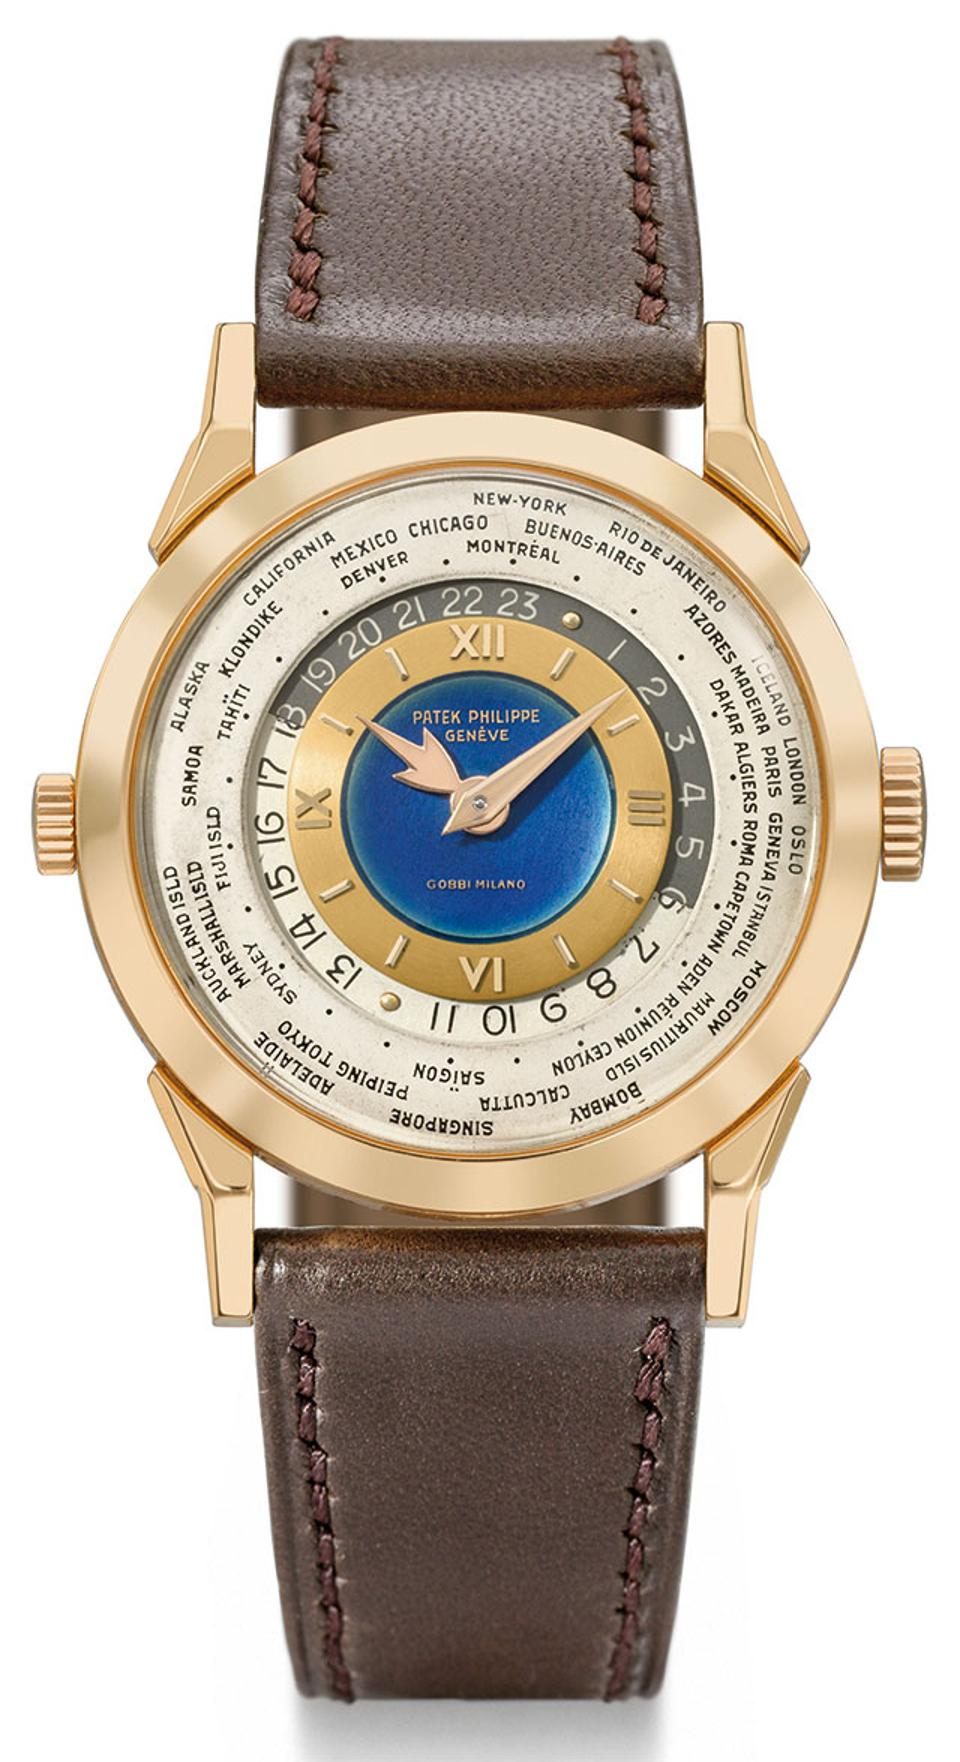 The Patek-Philippe Ref. 2523 world timer is being sold in Christie's November sale in Hong Kong for an estimated CHF 7-14-million.